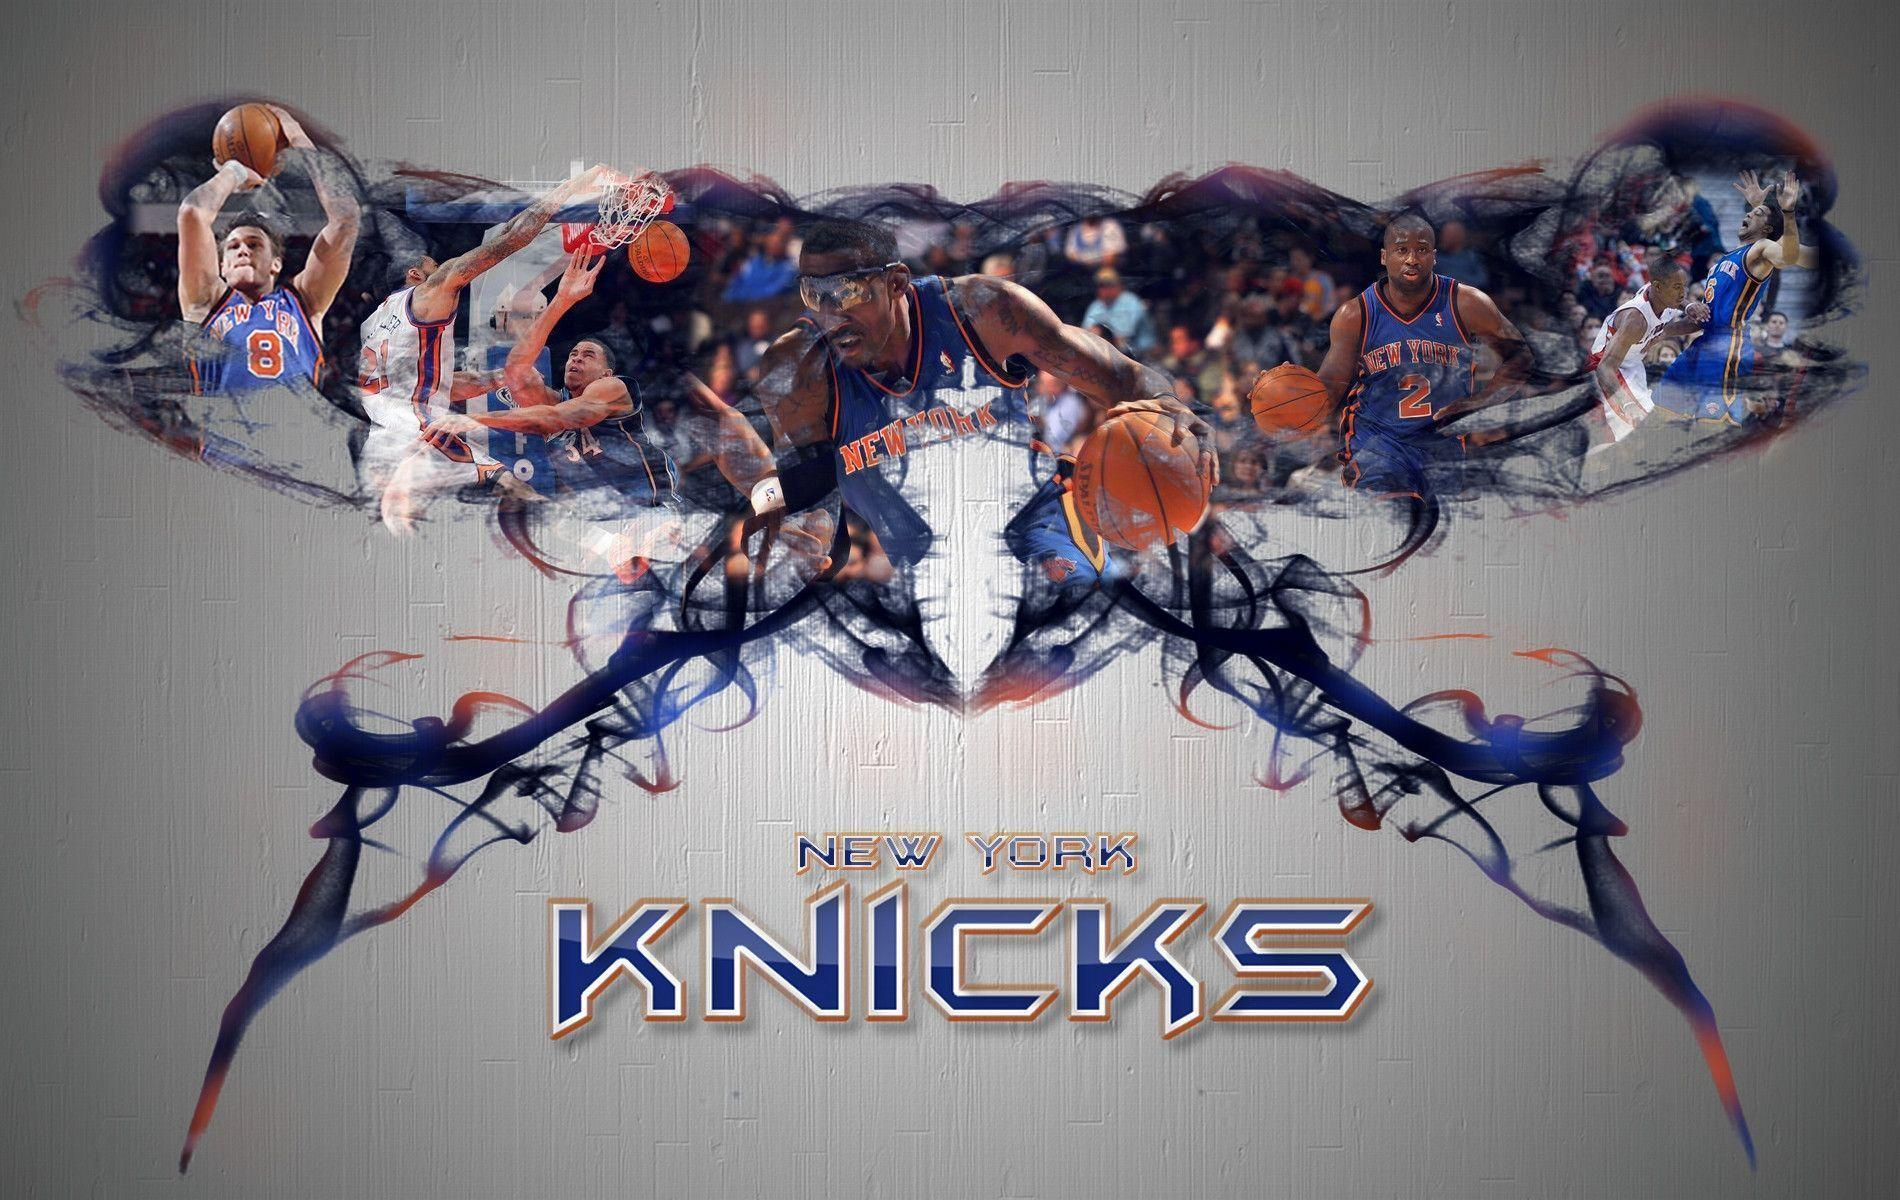 Knicks 2011 Basketball Wallpapers